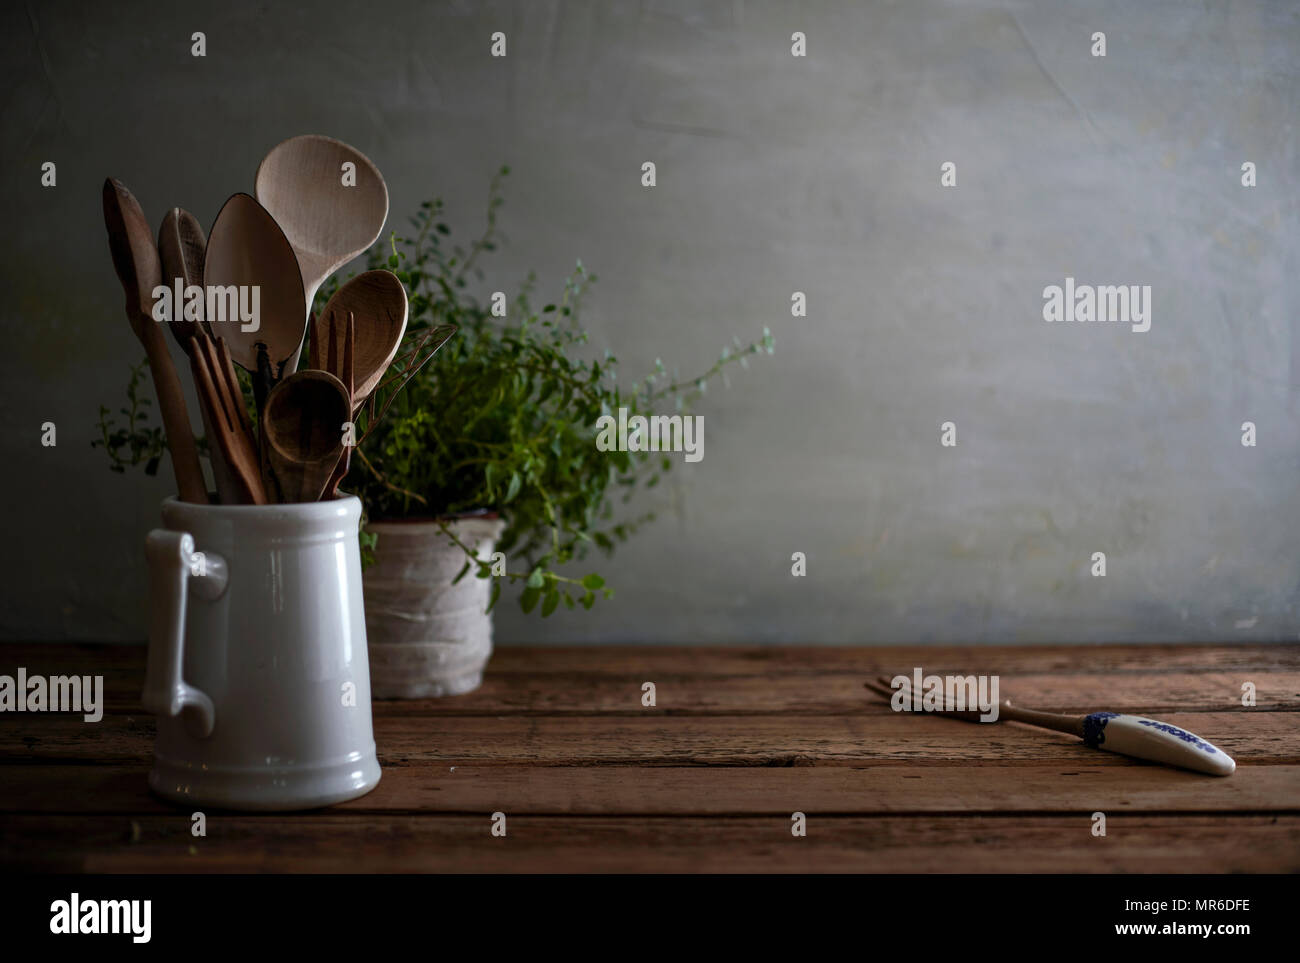 A still life image of a rustic, wood kitchen counter with wooden spoons in a porcelain vessel and a lovely, tangled oregano plant in the background. - Stock Image